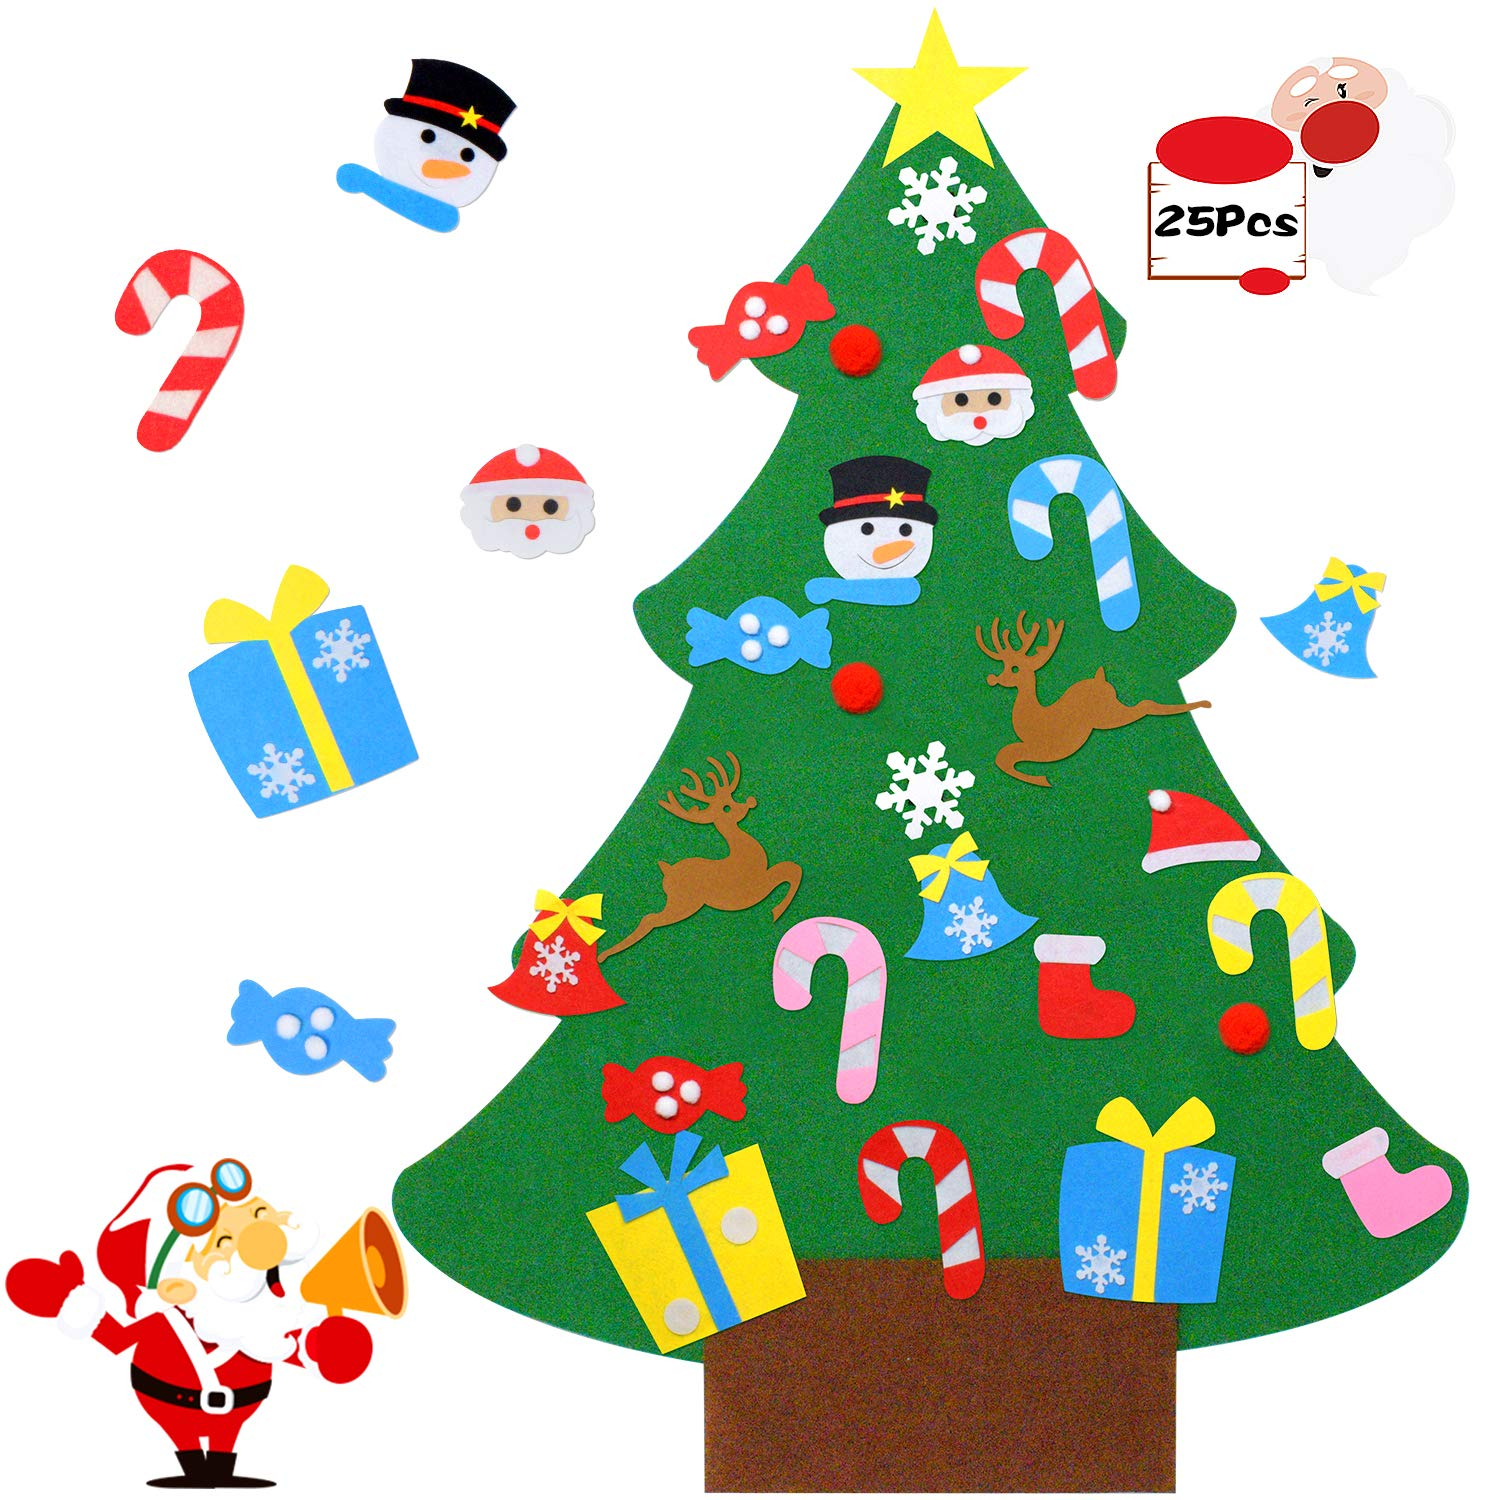 Cute Christmas decoration for kids